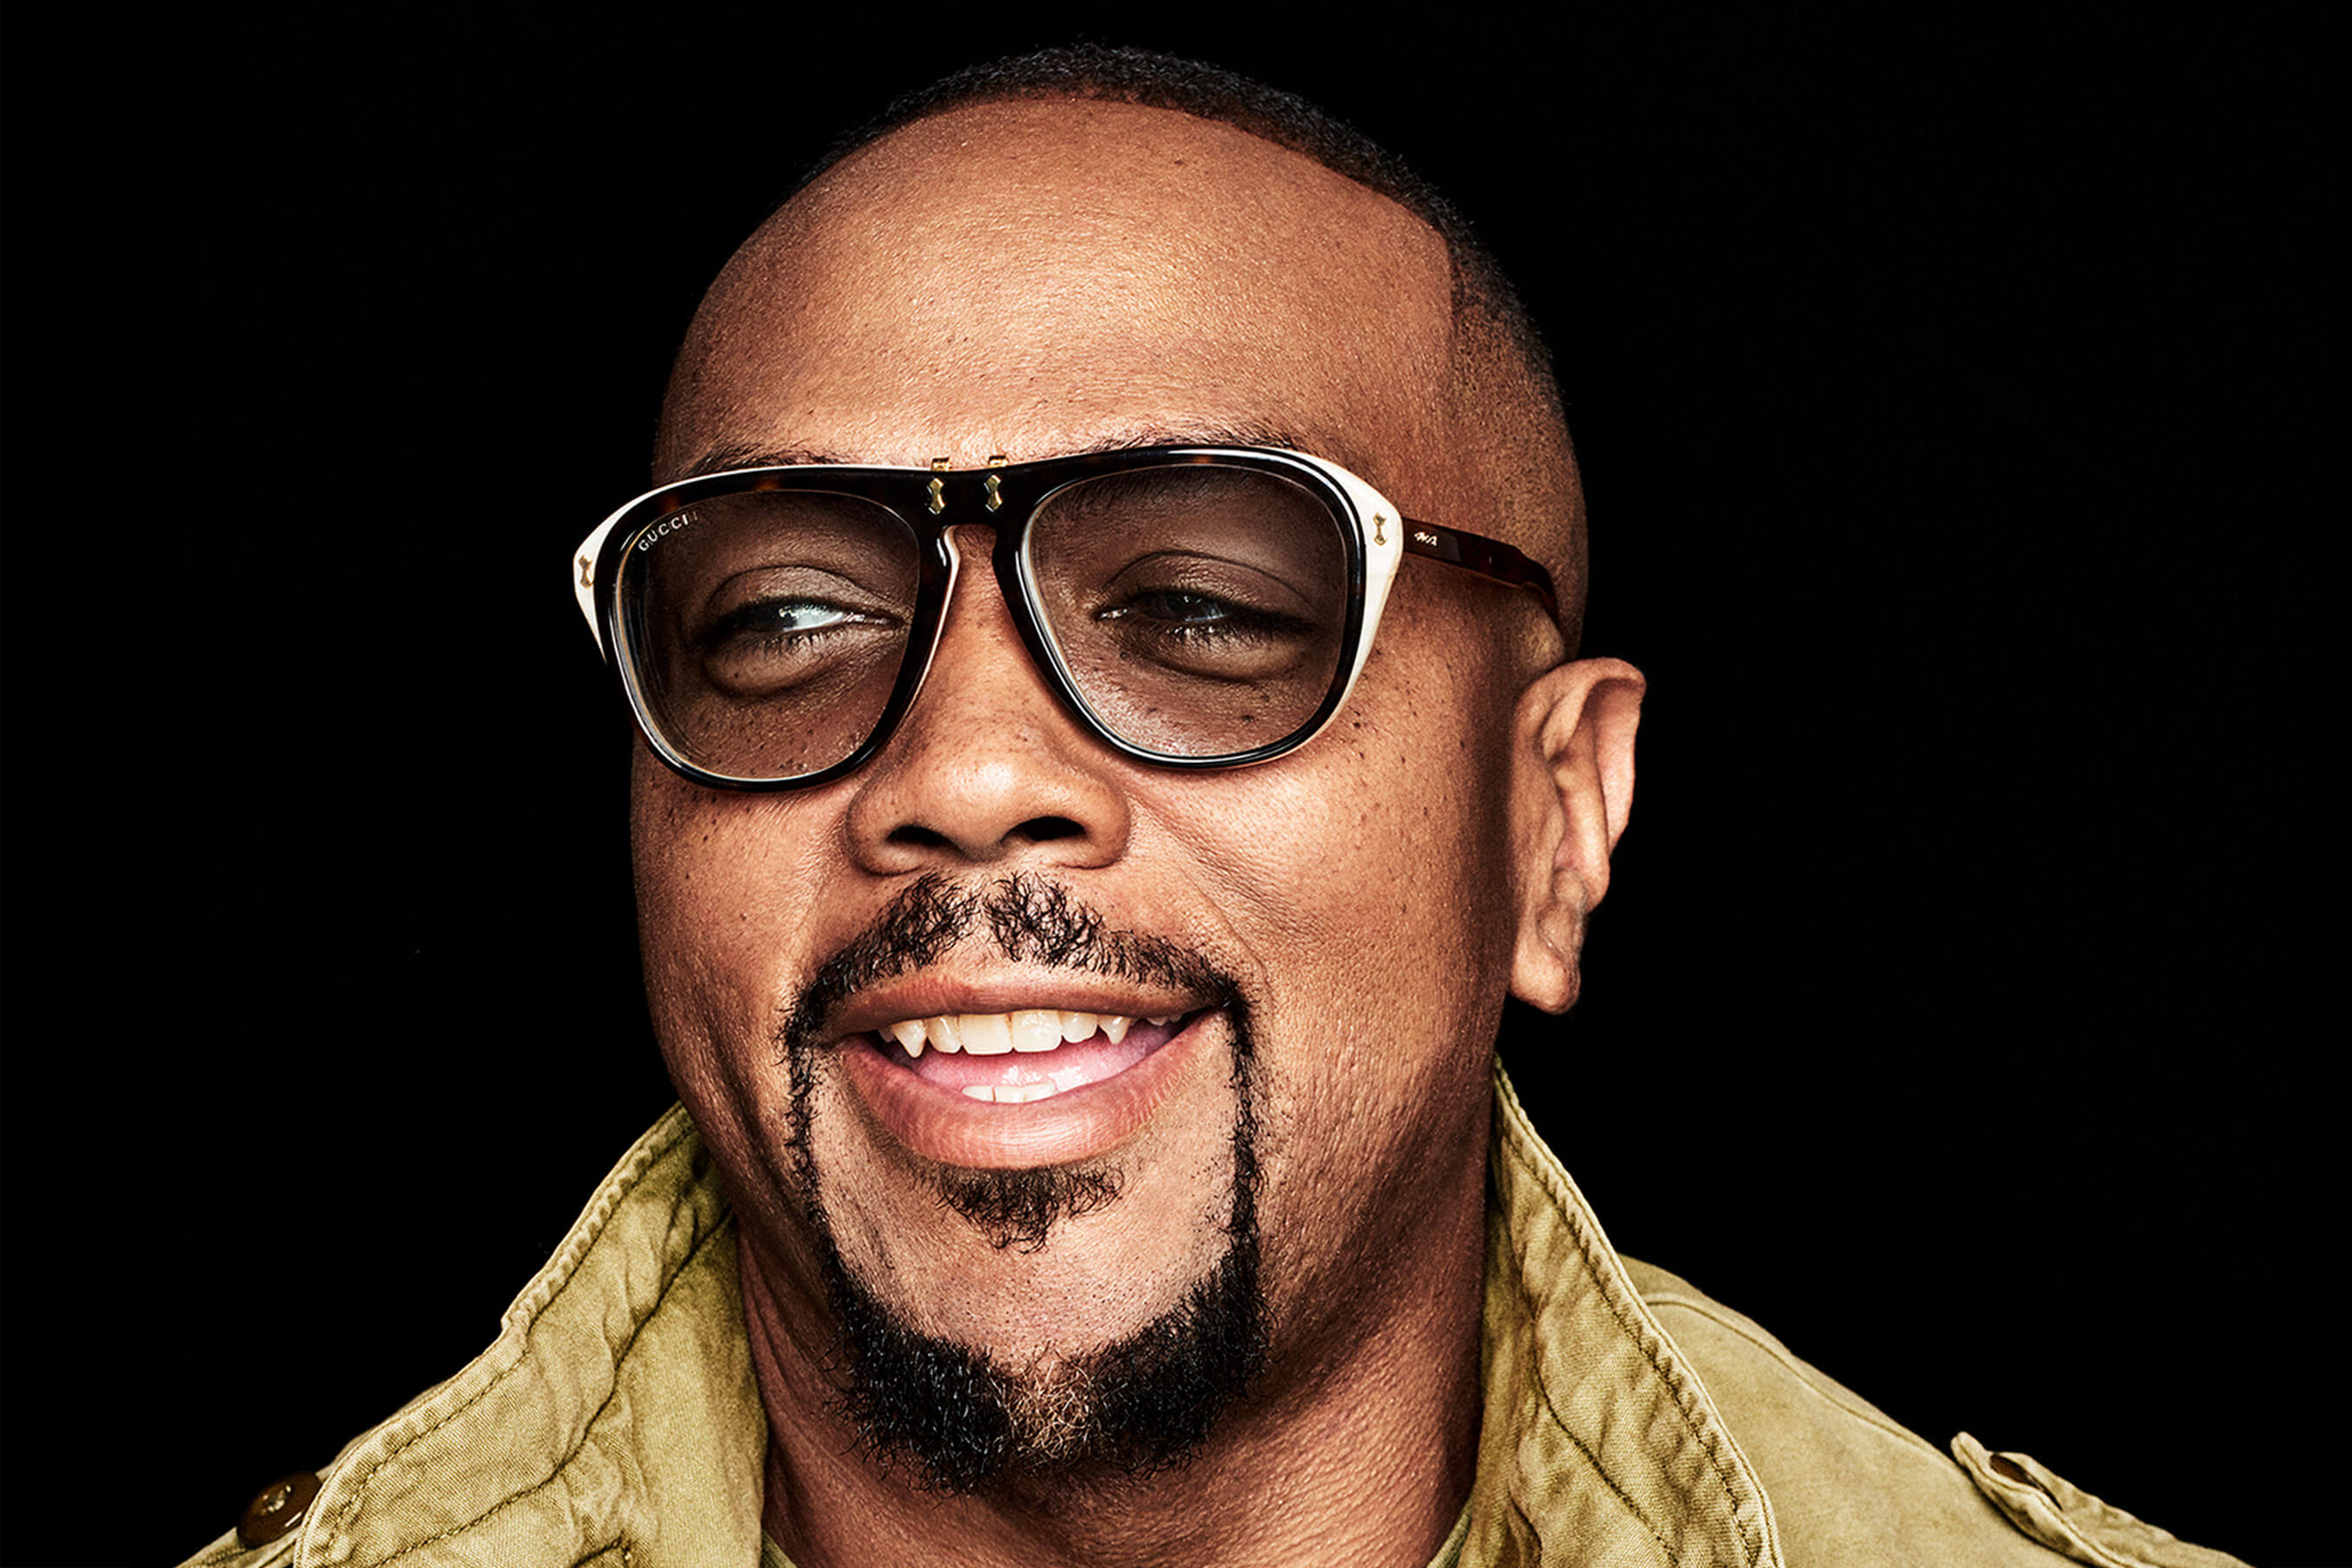 Timbaland author photo CR: Eric Ray Davis